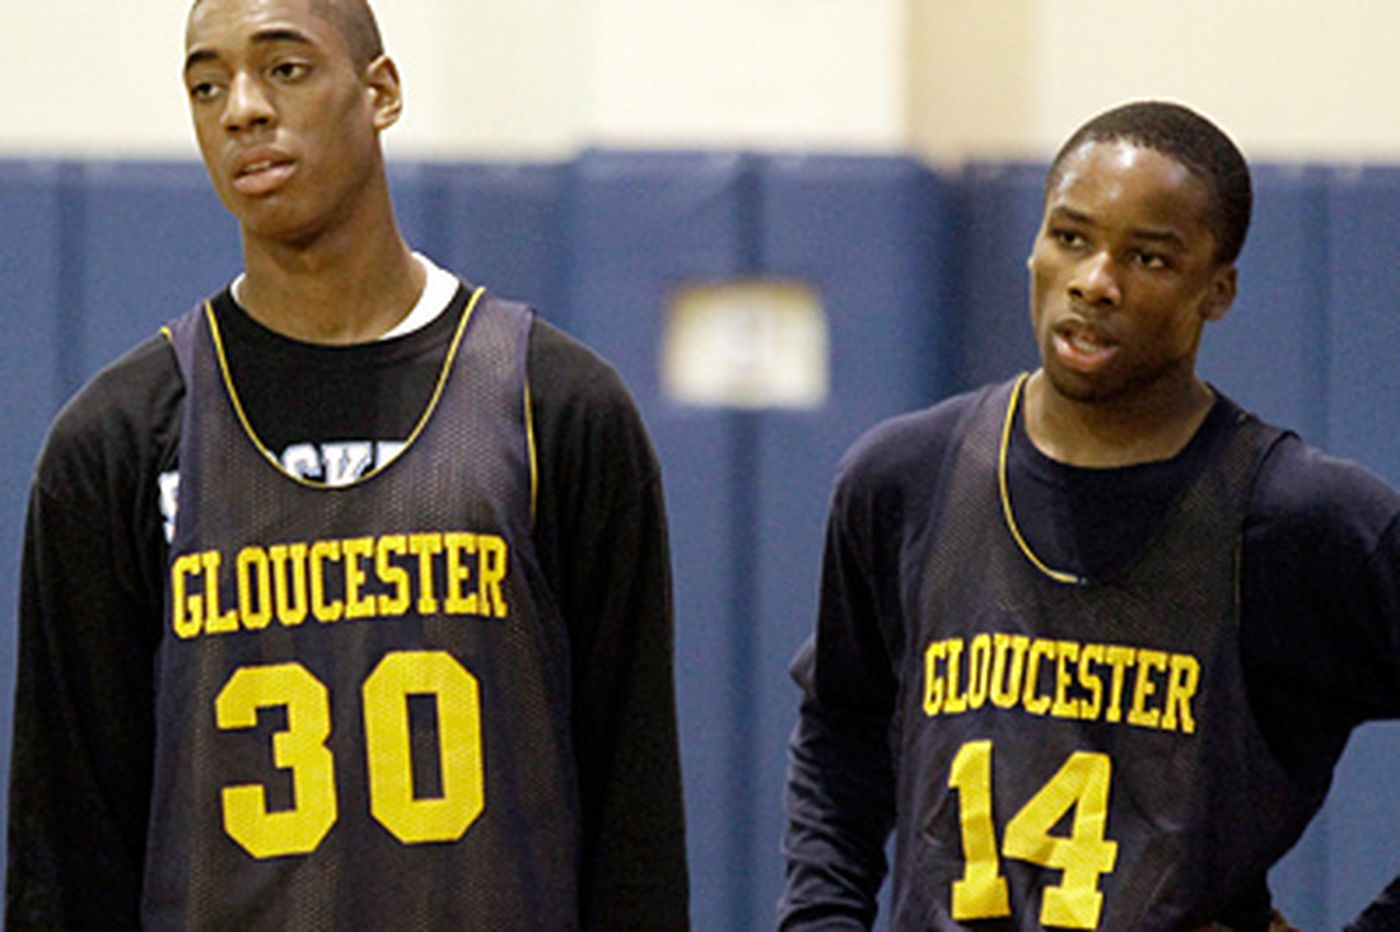 Gloucester's Okoro and Almon grow into leadership roles